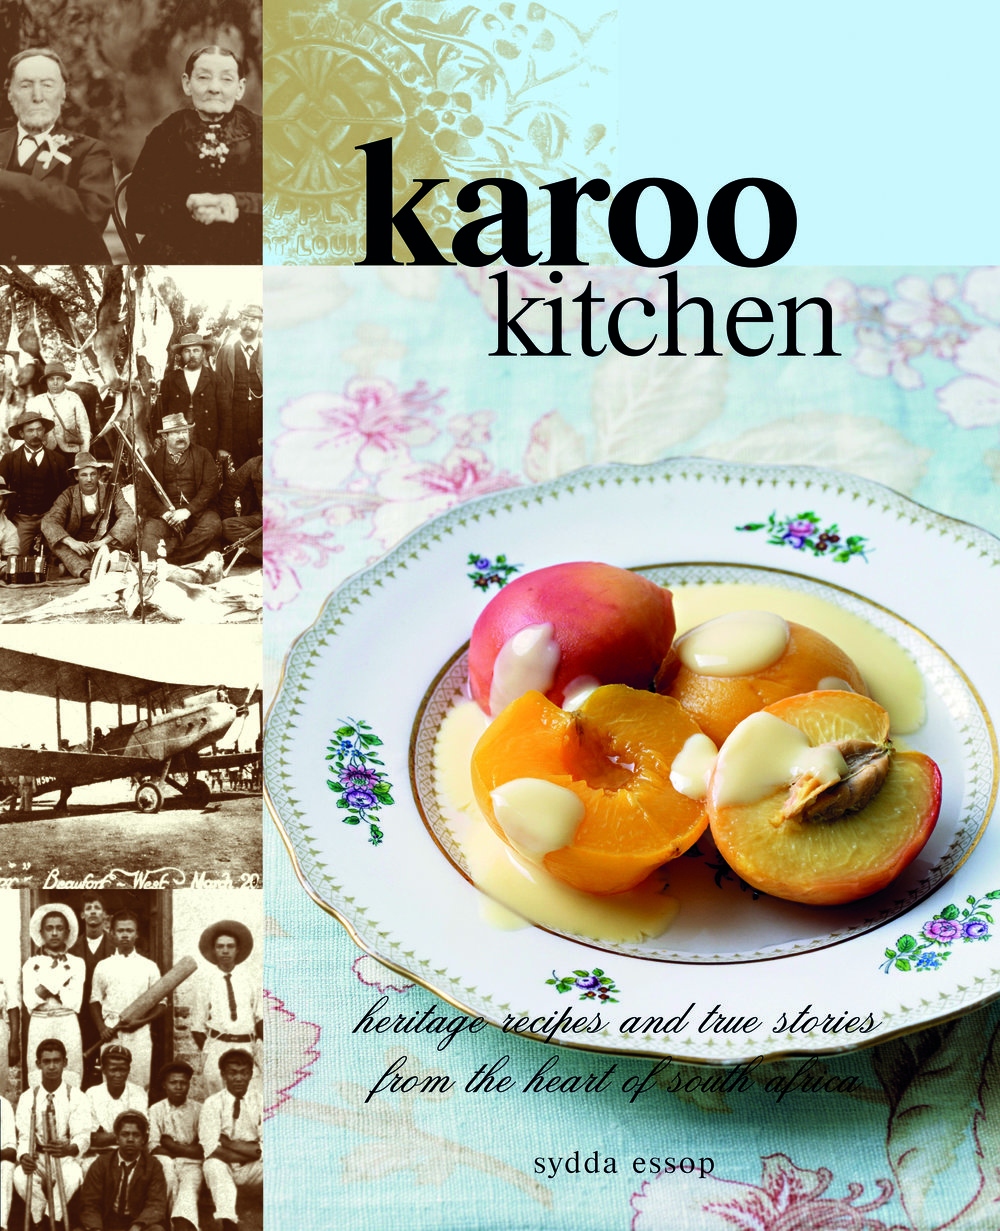 karoo_kitchen_cover_print.jpg